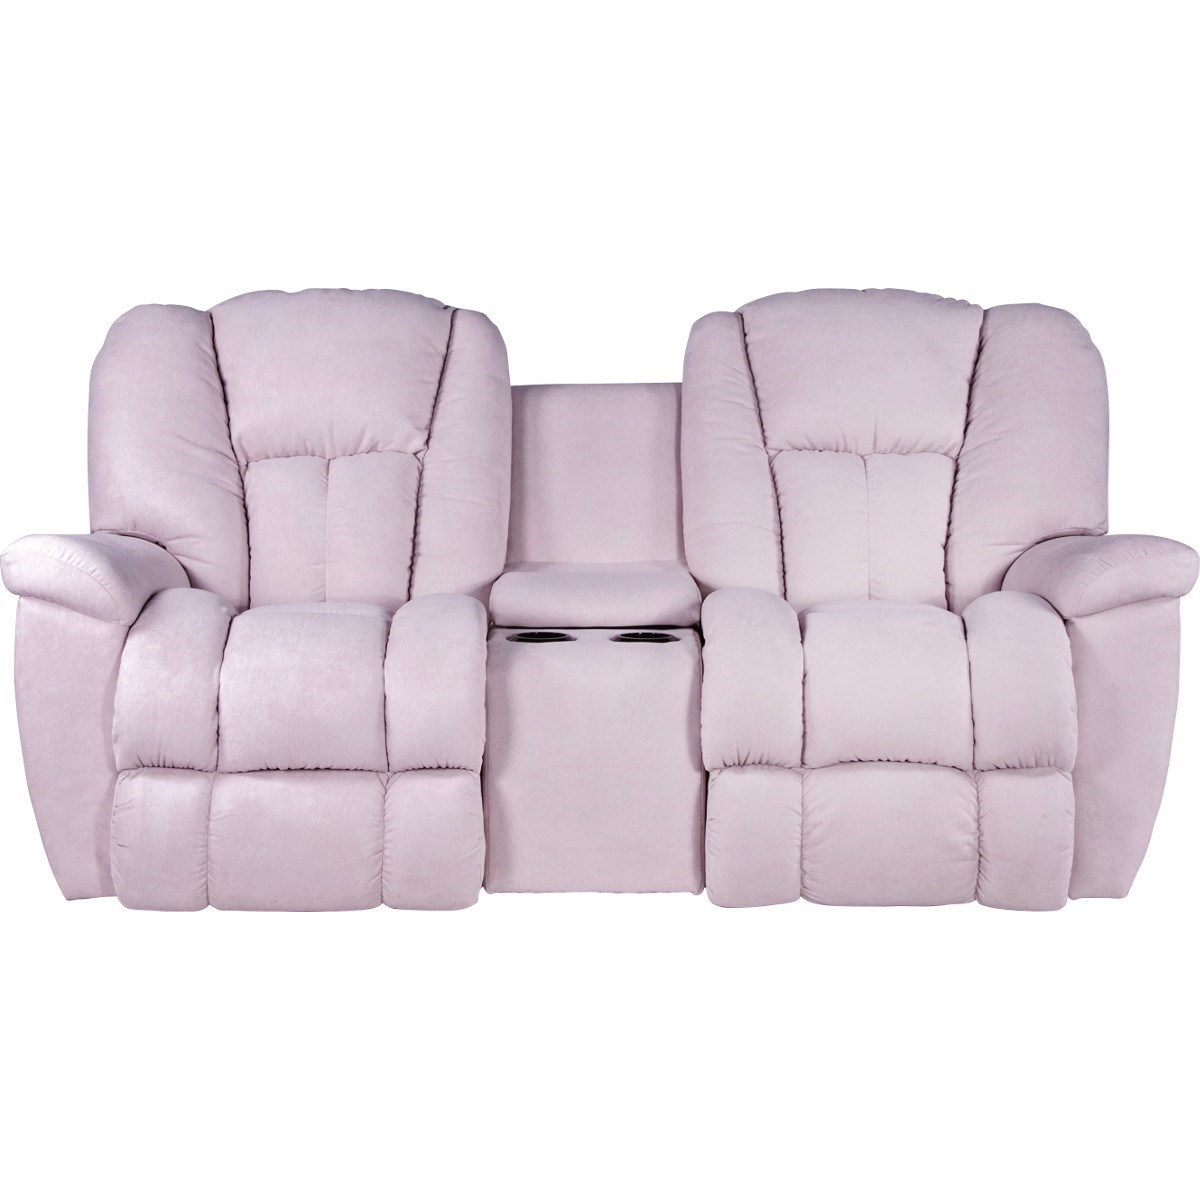 power reclining sofa with cup holders virginia white recline xrw full loveseat drink